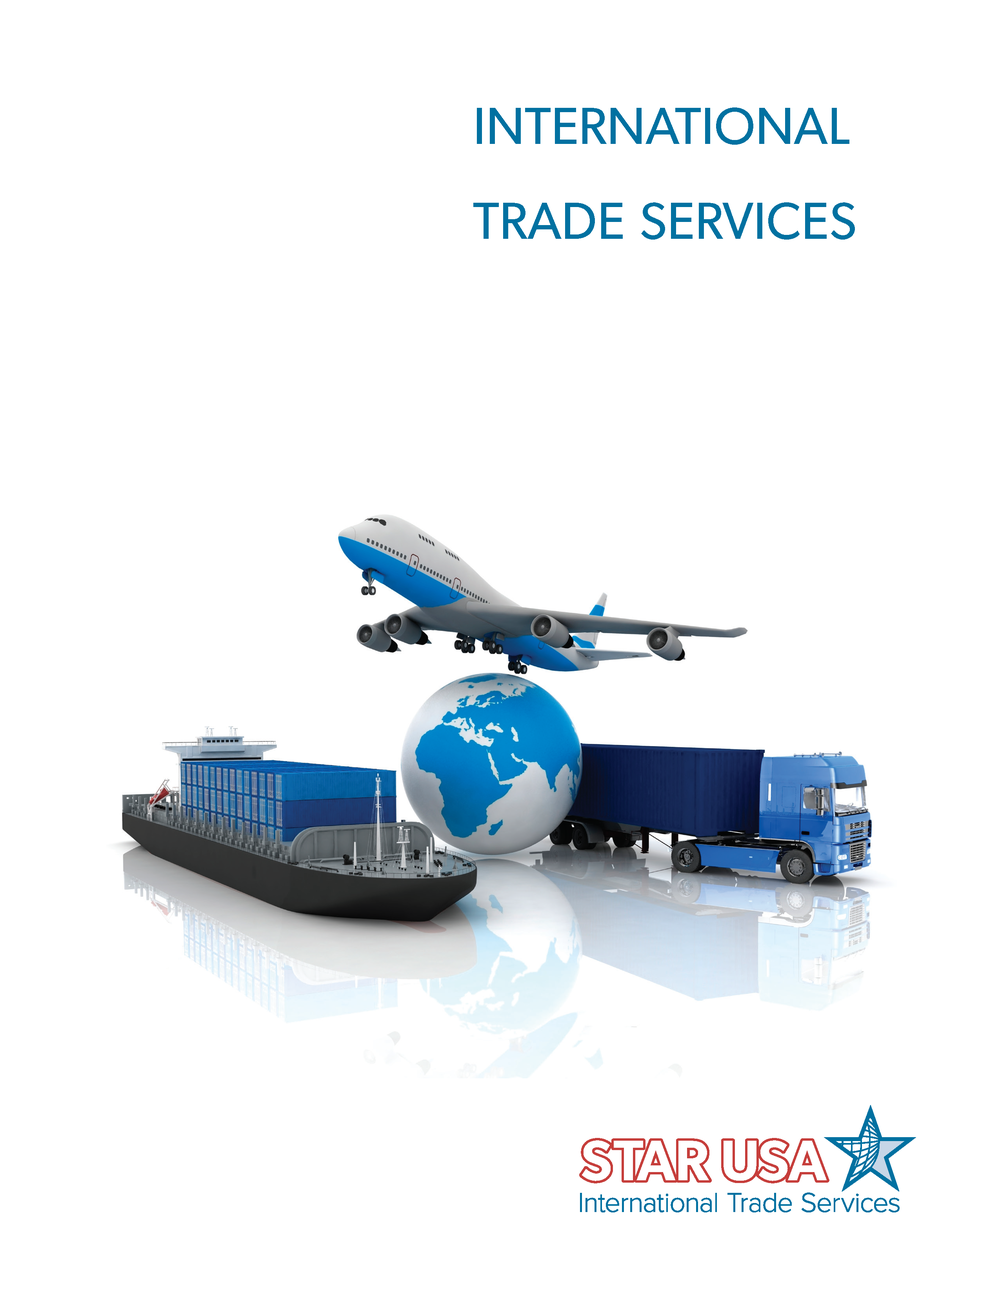 Star USA Services Brochure More information about our services.